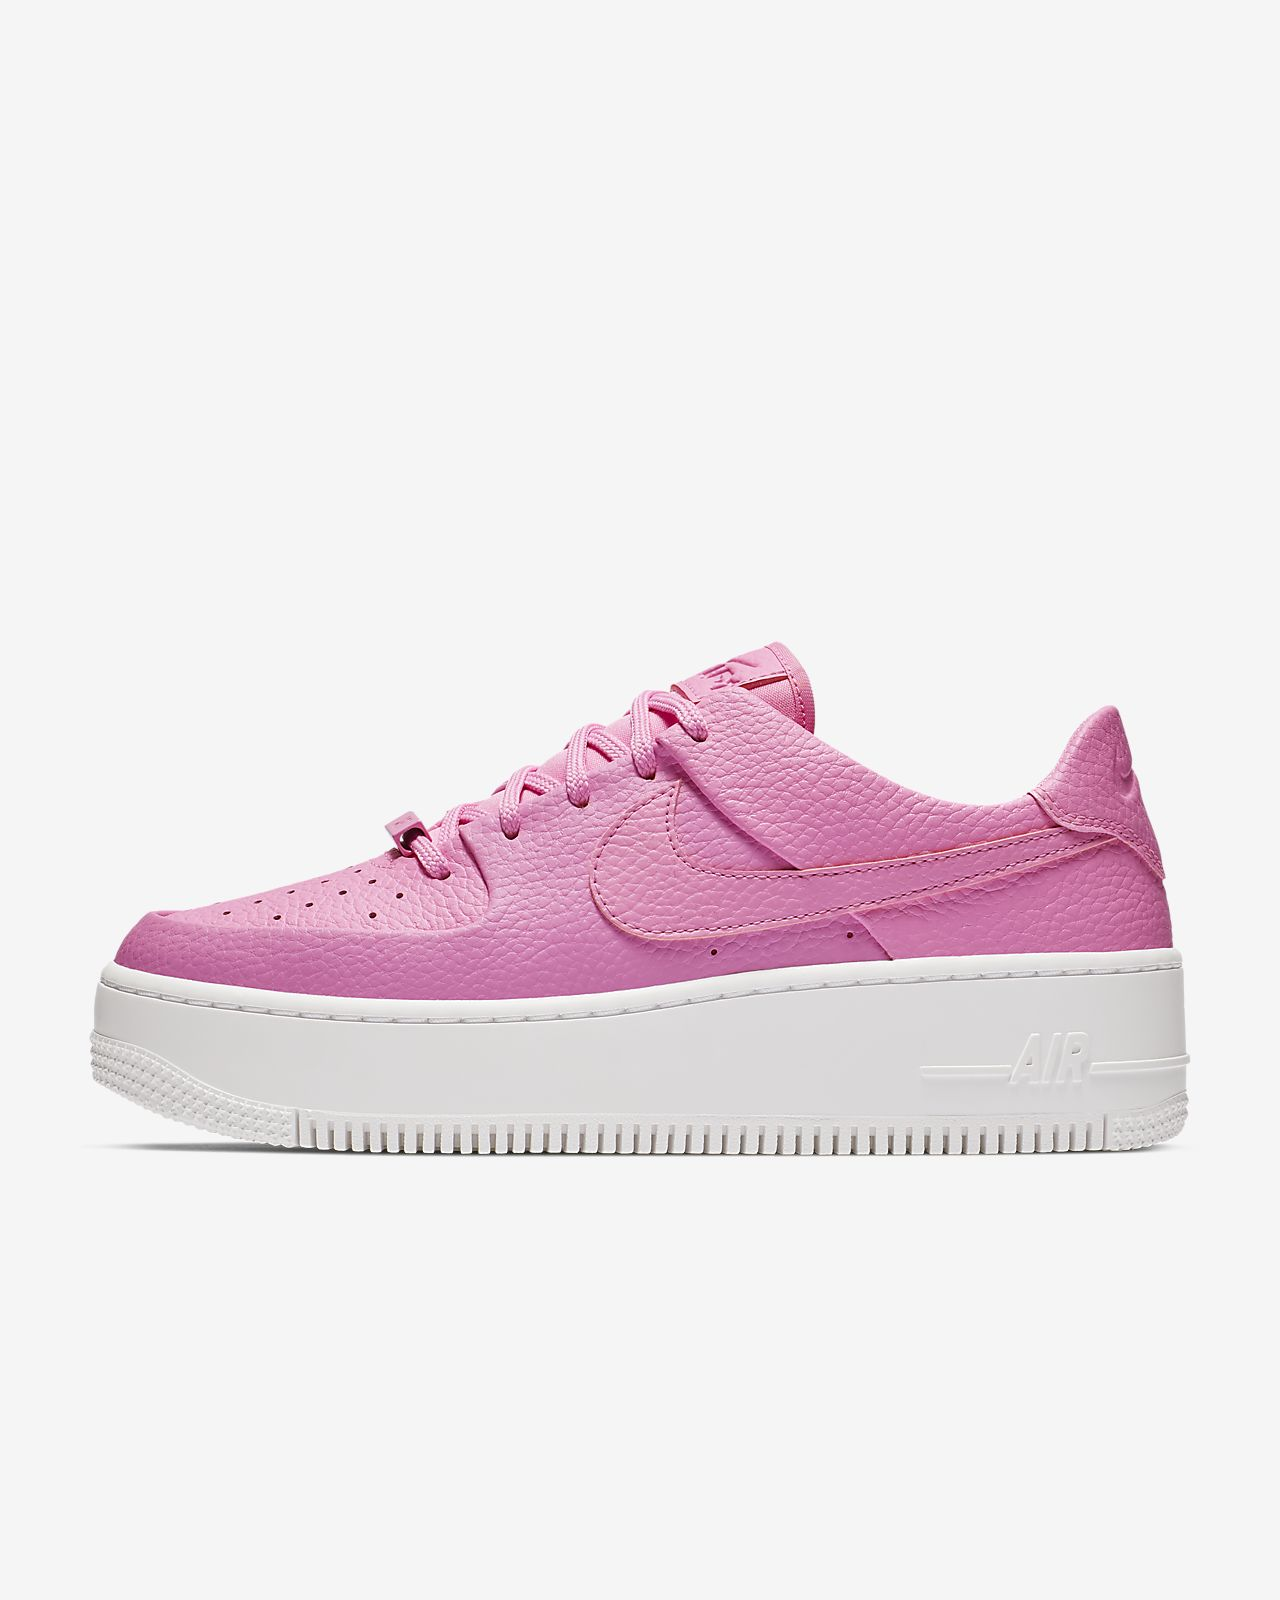 0c387ae5966 Nike Air Force 1 Sage Low Women s Shoe. Nike.com